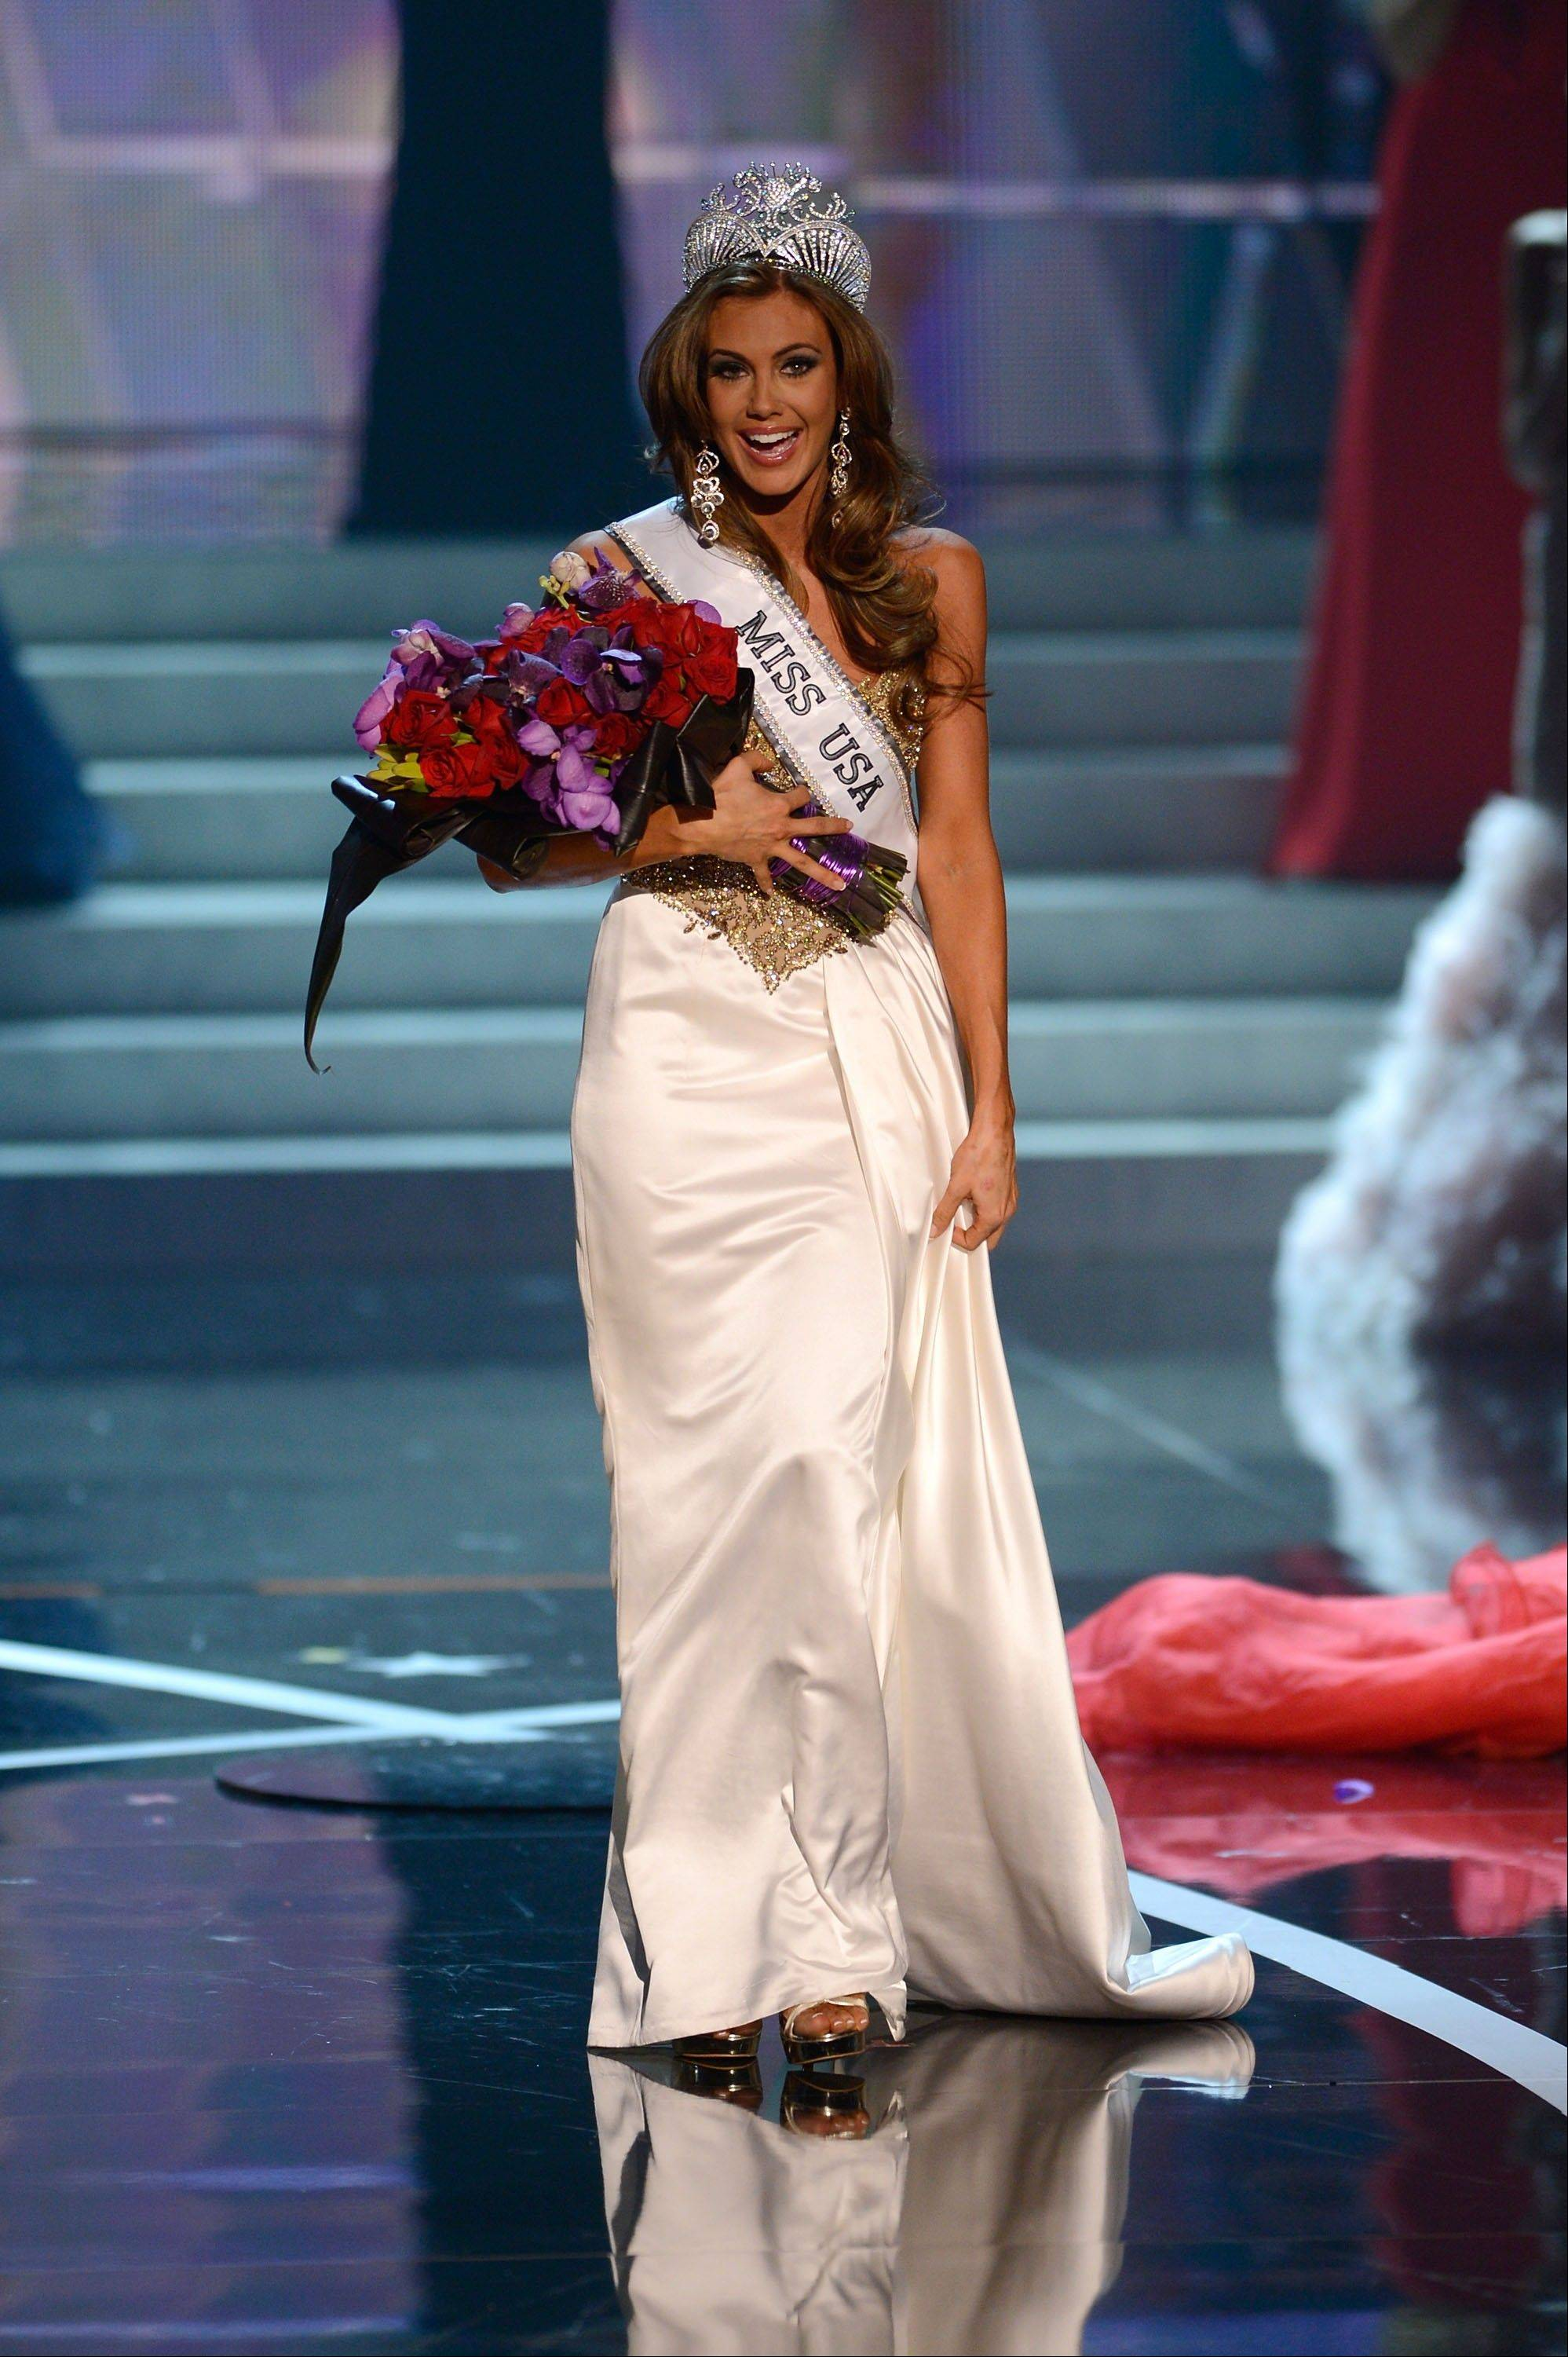 Miss Connecticut Erin Brady reacts after winning the Miss USA 2013 pageant, Sunday, June 16, 2013, in Las Vegas.